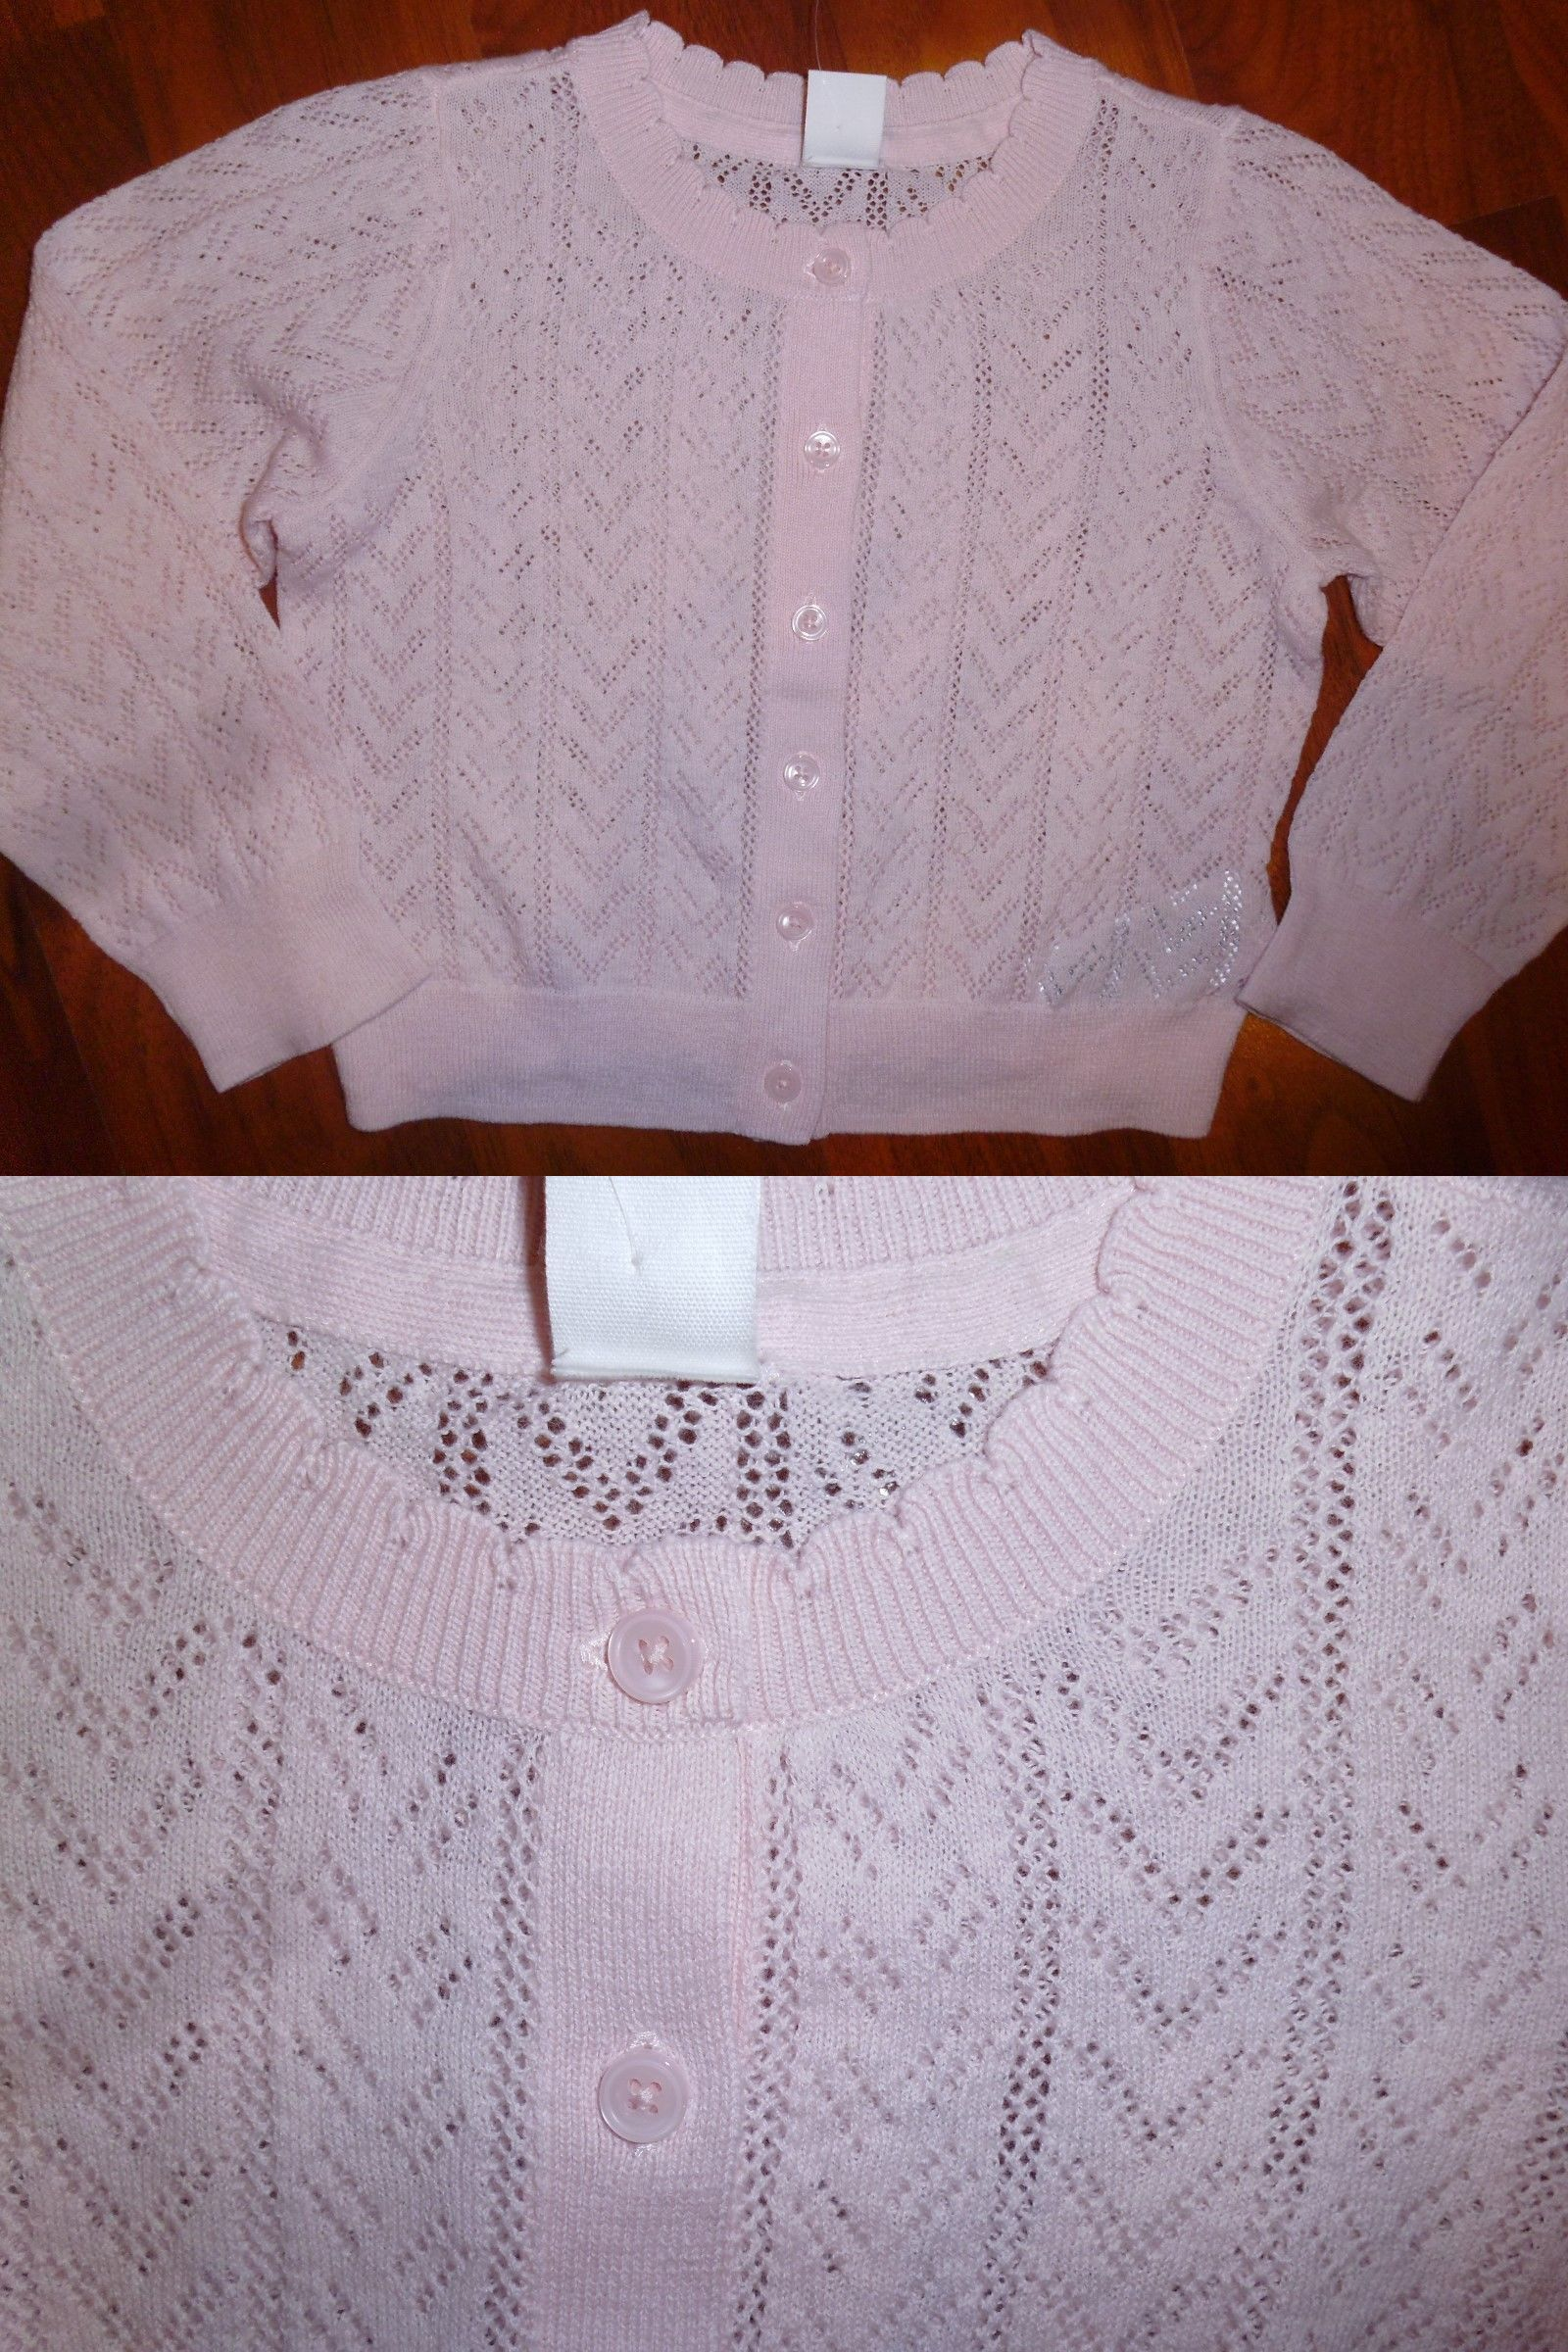 NWT Gymboree Girls White Cable Knit Cardigan Sweater 2T 3T 4T 5T